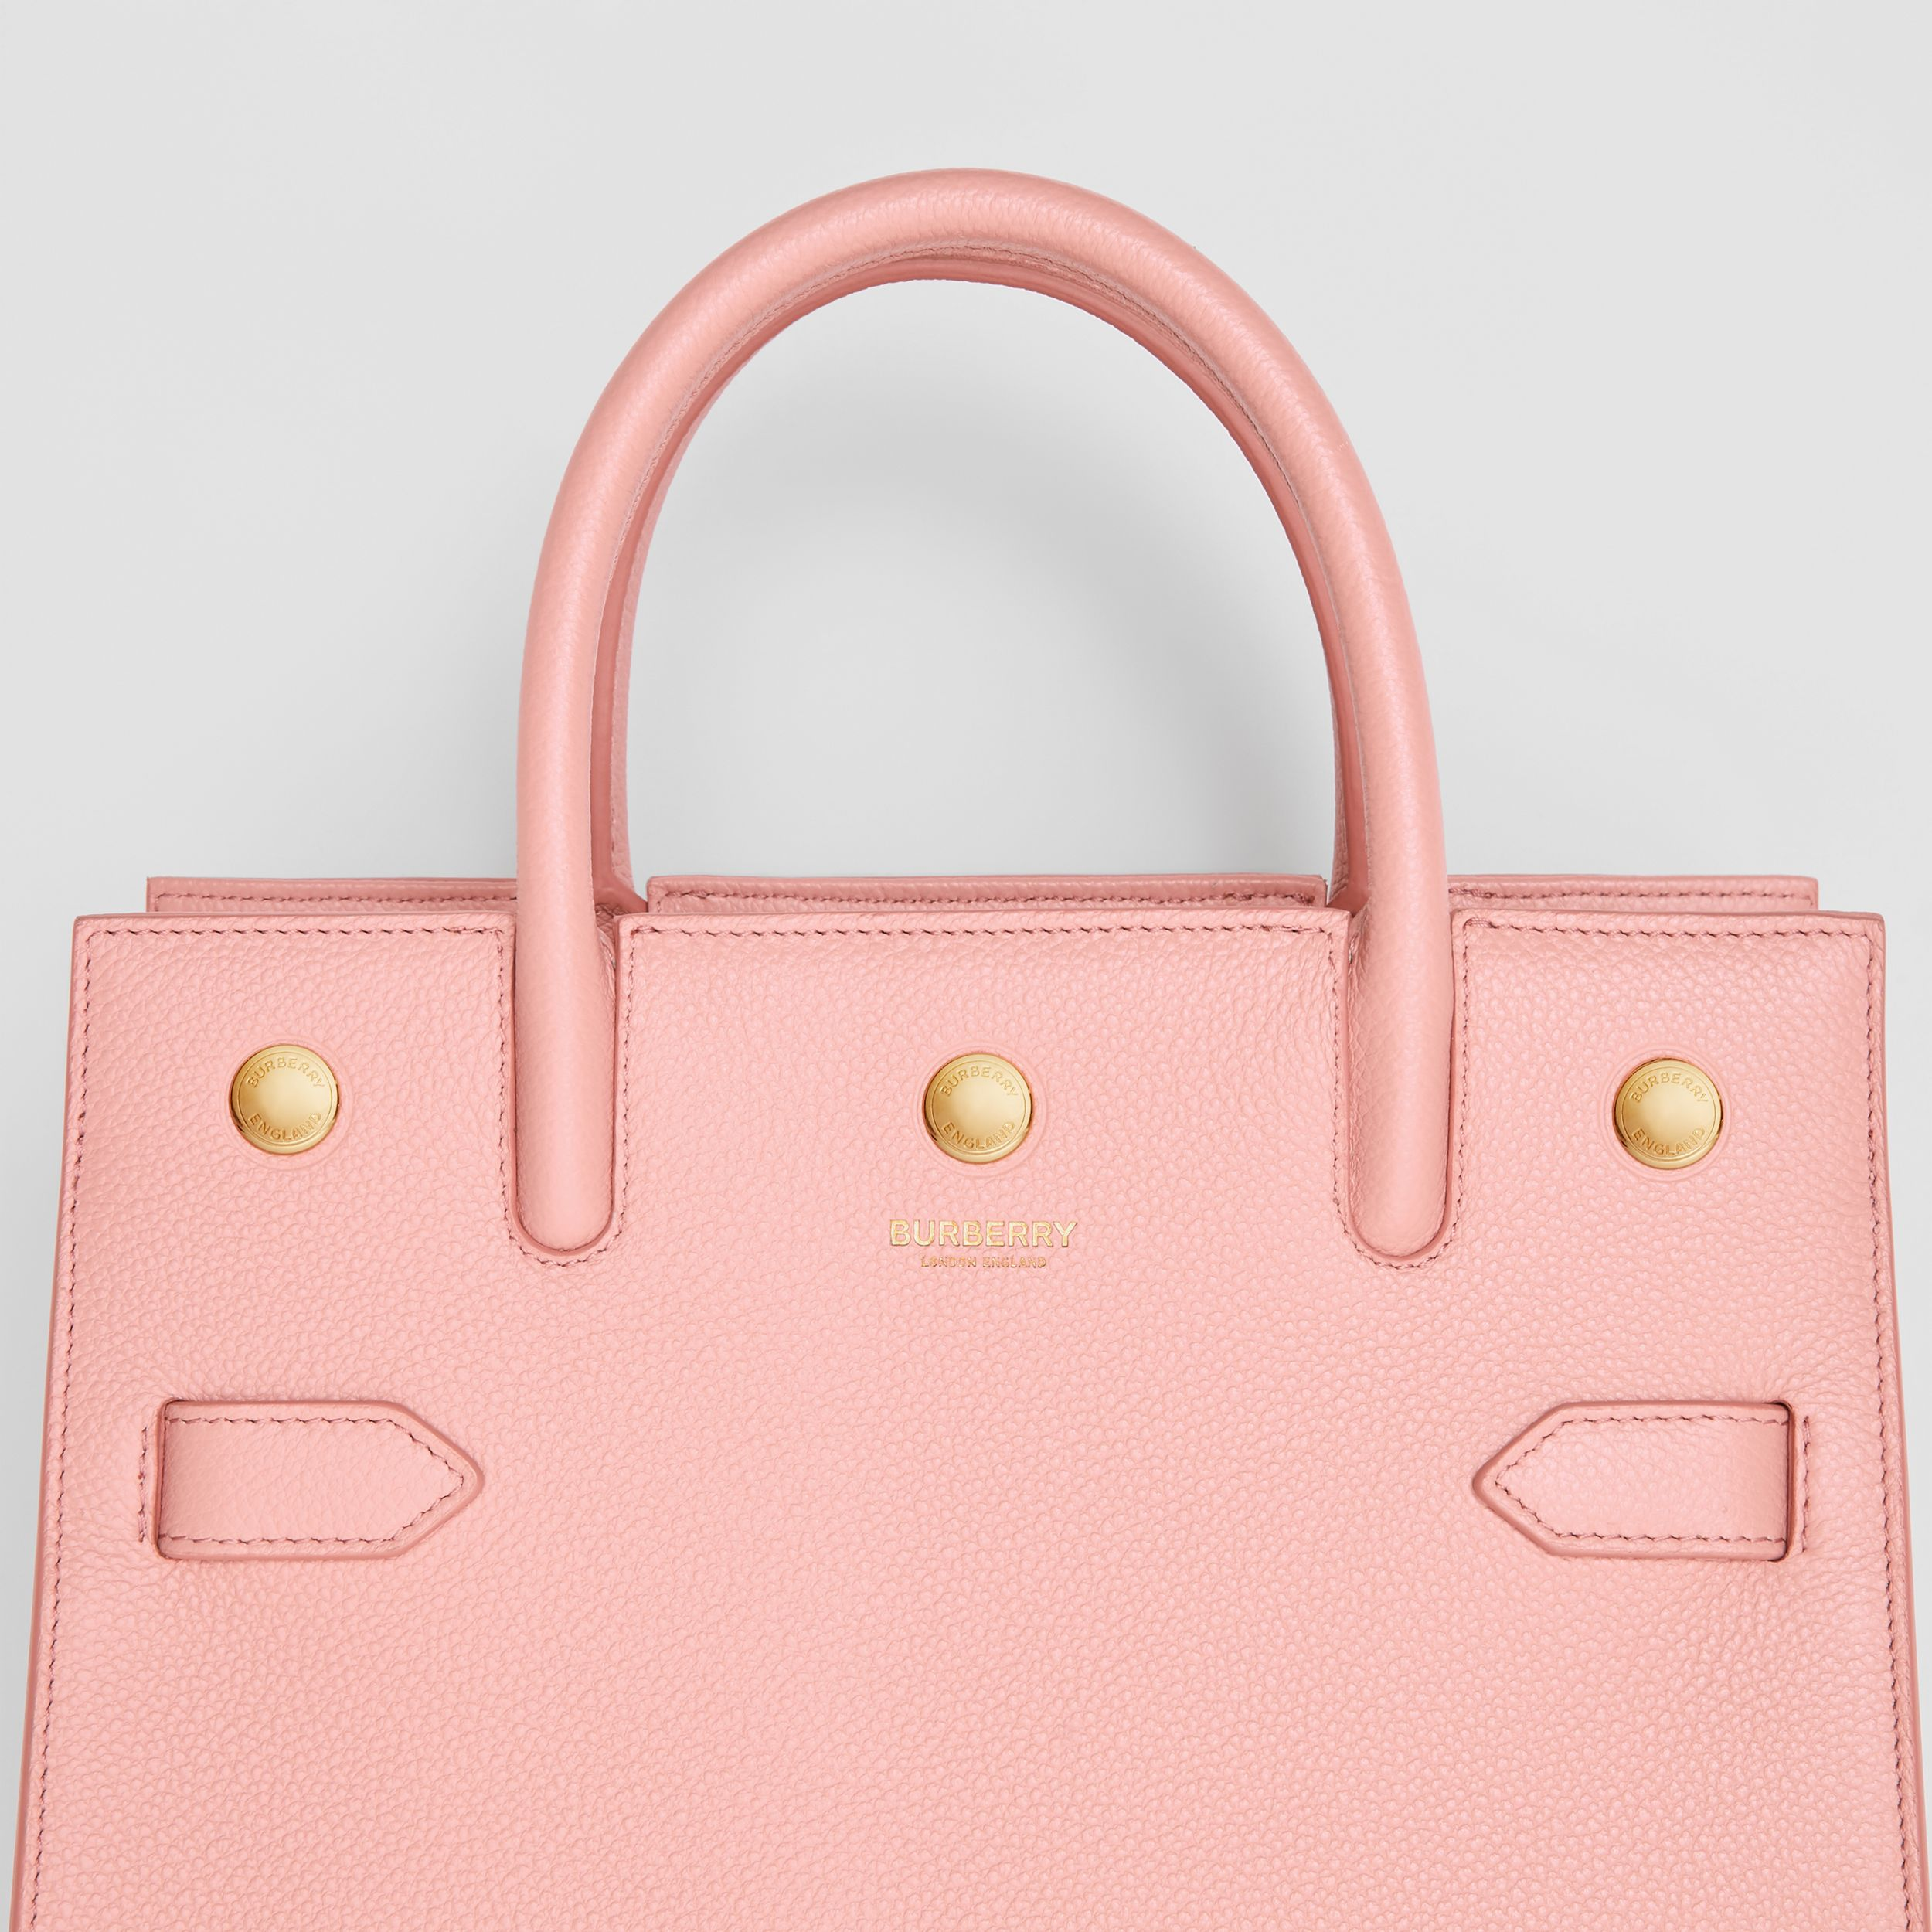 Borsa Title mini in pelle con due manici (Rosa Fard) - Donna | Burberry - 2